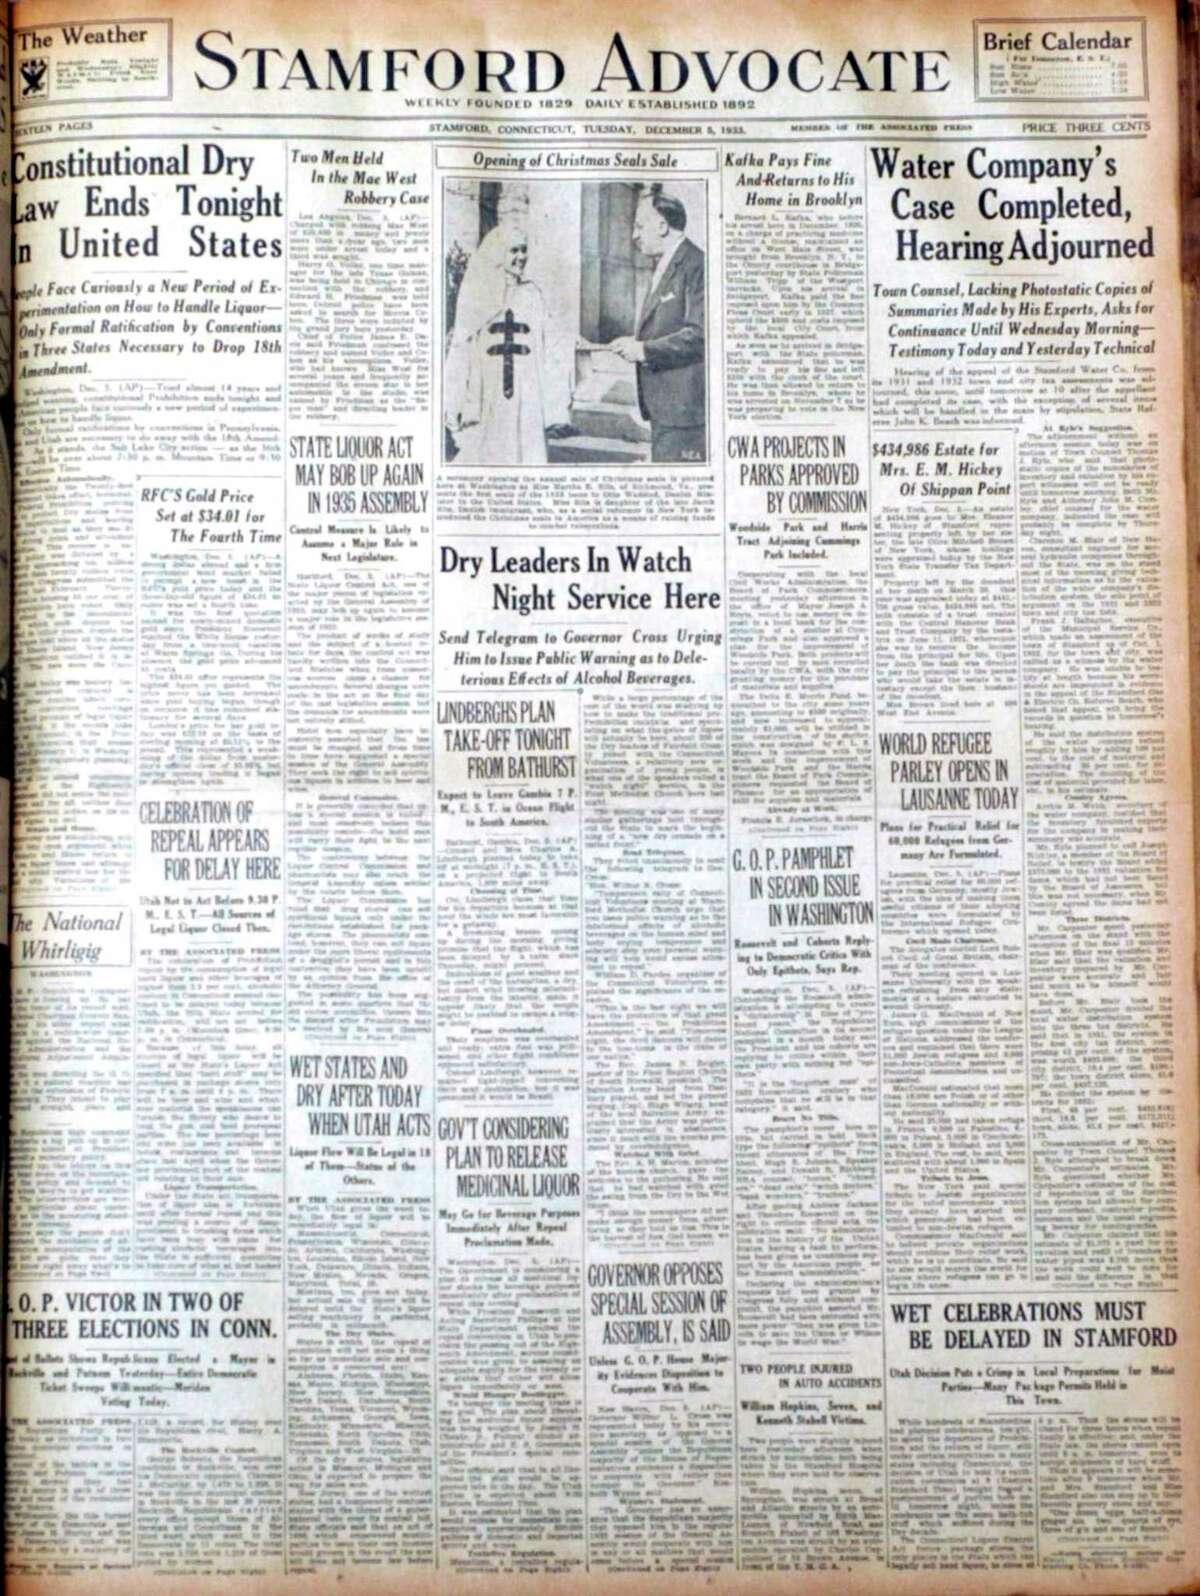 The front page of the Stamford Advocate, Tuesday, December 5, 1933, marks the end of Prohibition. However, you still cannot buy food and liquor in the same store in Connecticut, says Francois Steichen.